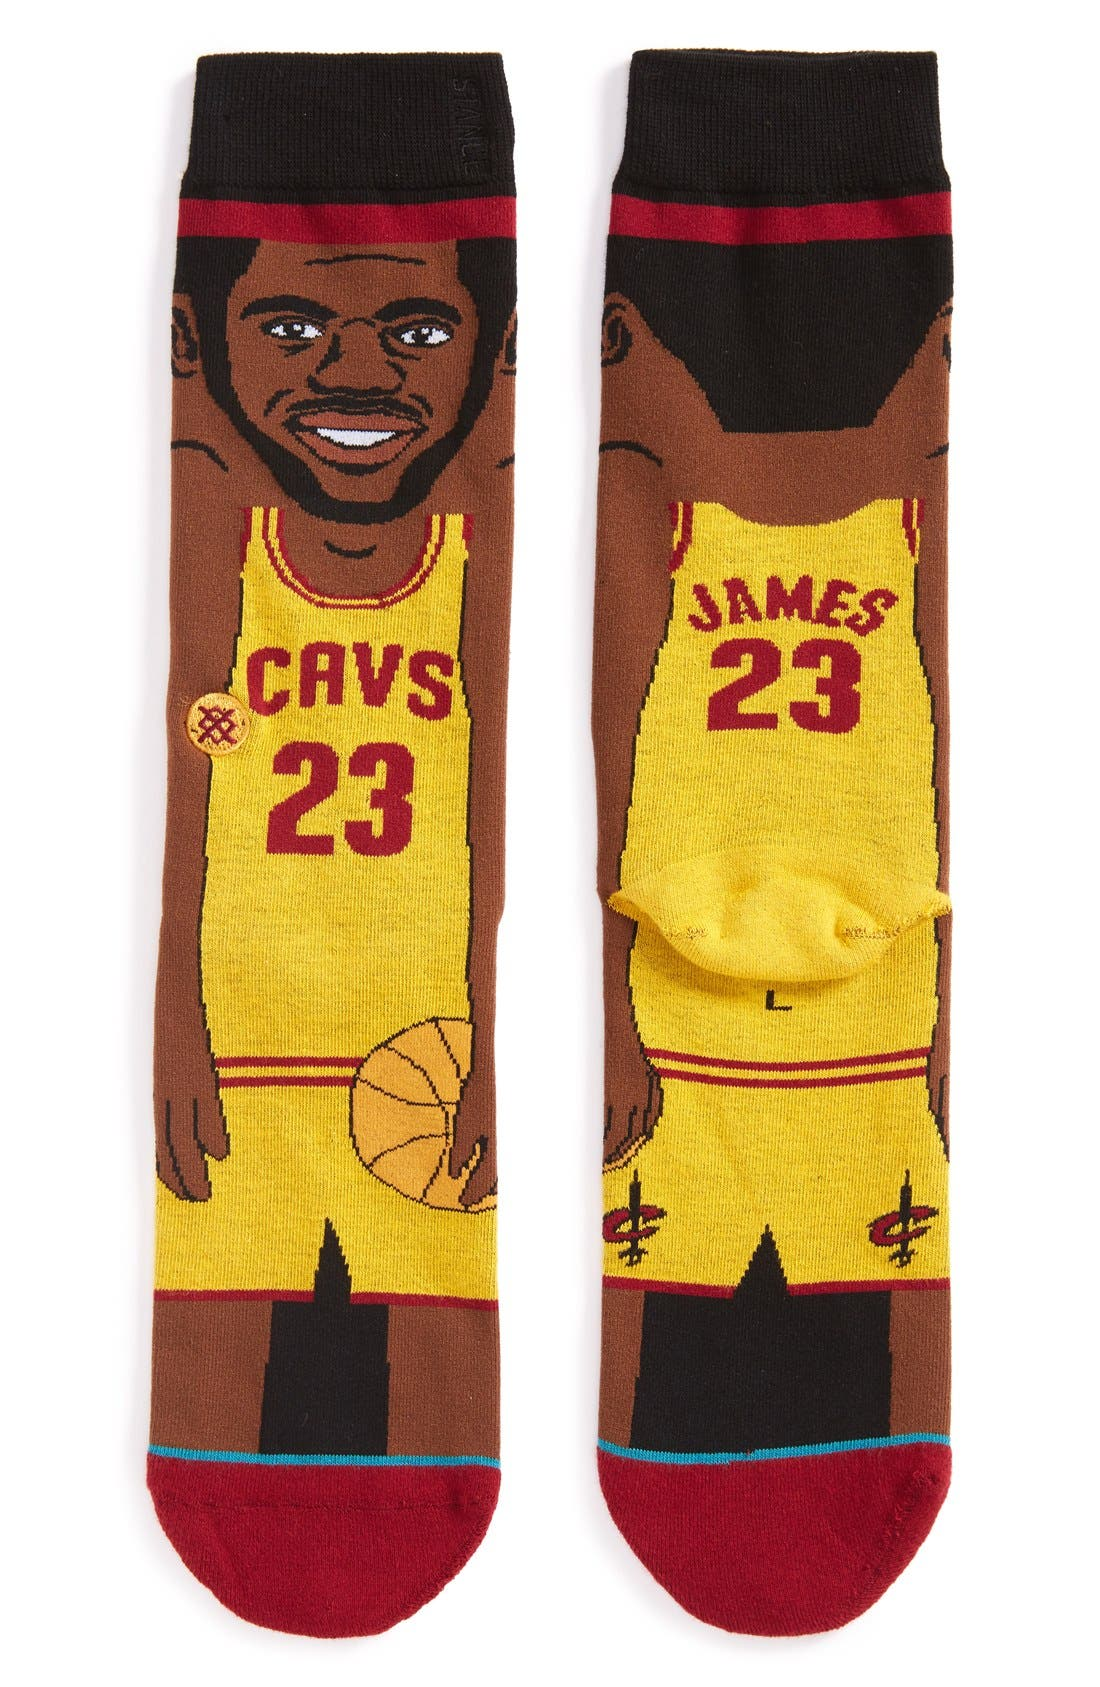 Main Image - Stance 'NBA Legends - LeBron James' Crew Socks